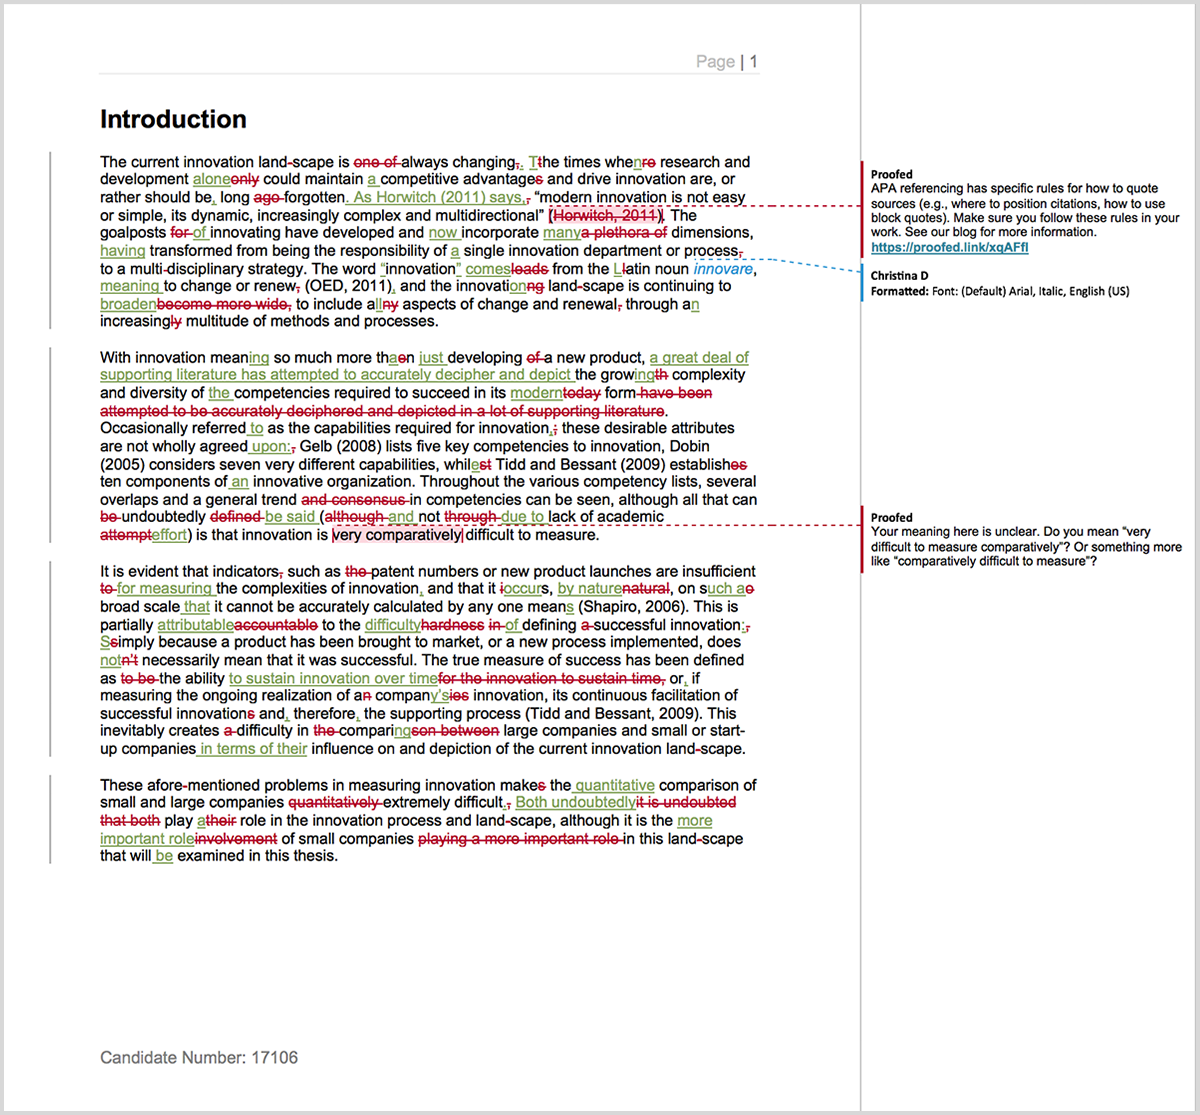 Master thesis proofreader